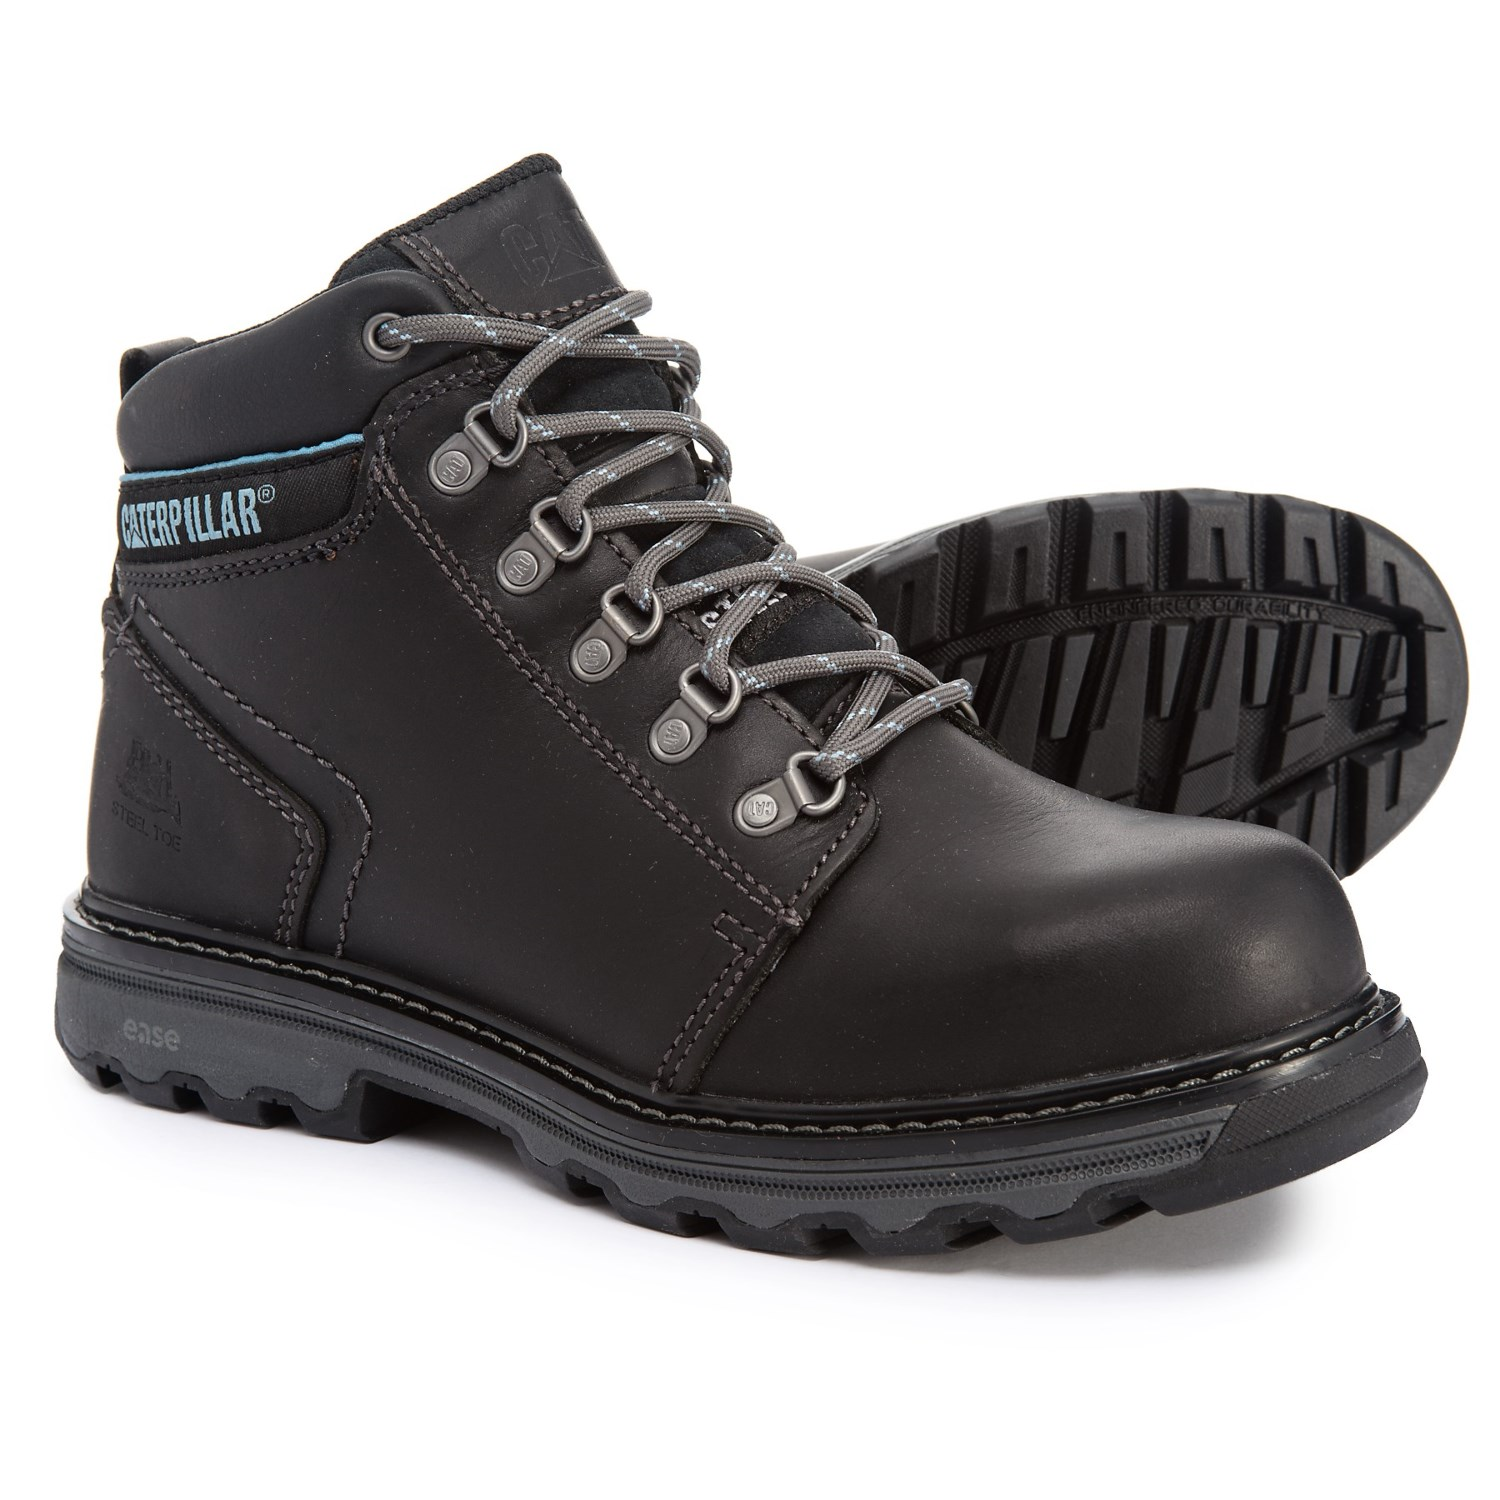 Caterpillar Ellie Work Boots Steel Safety Toe Leather For Women